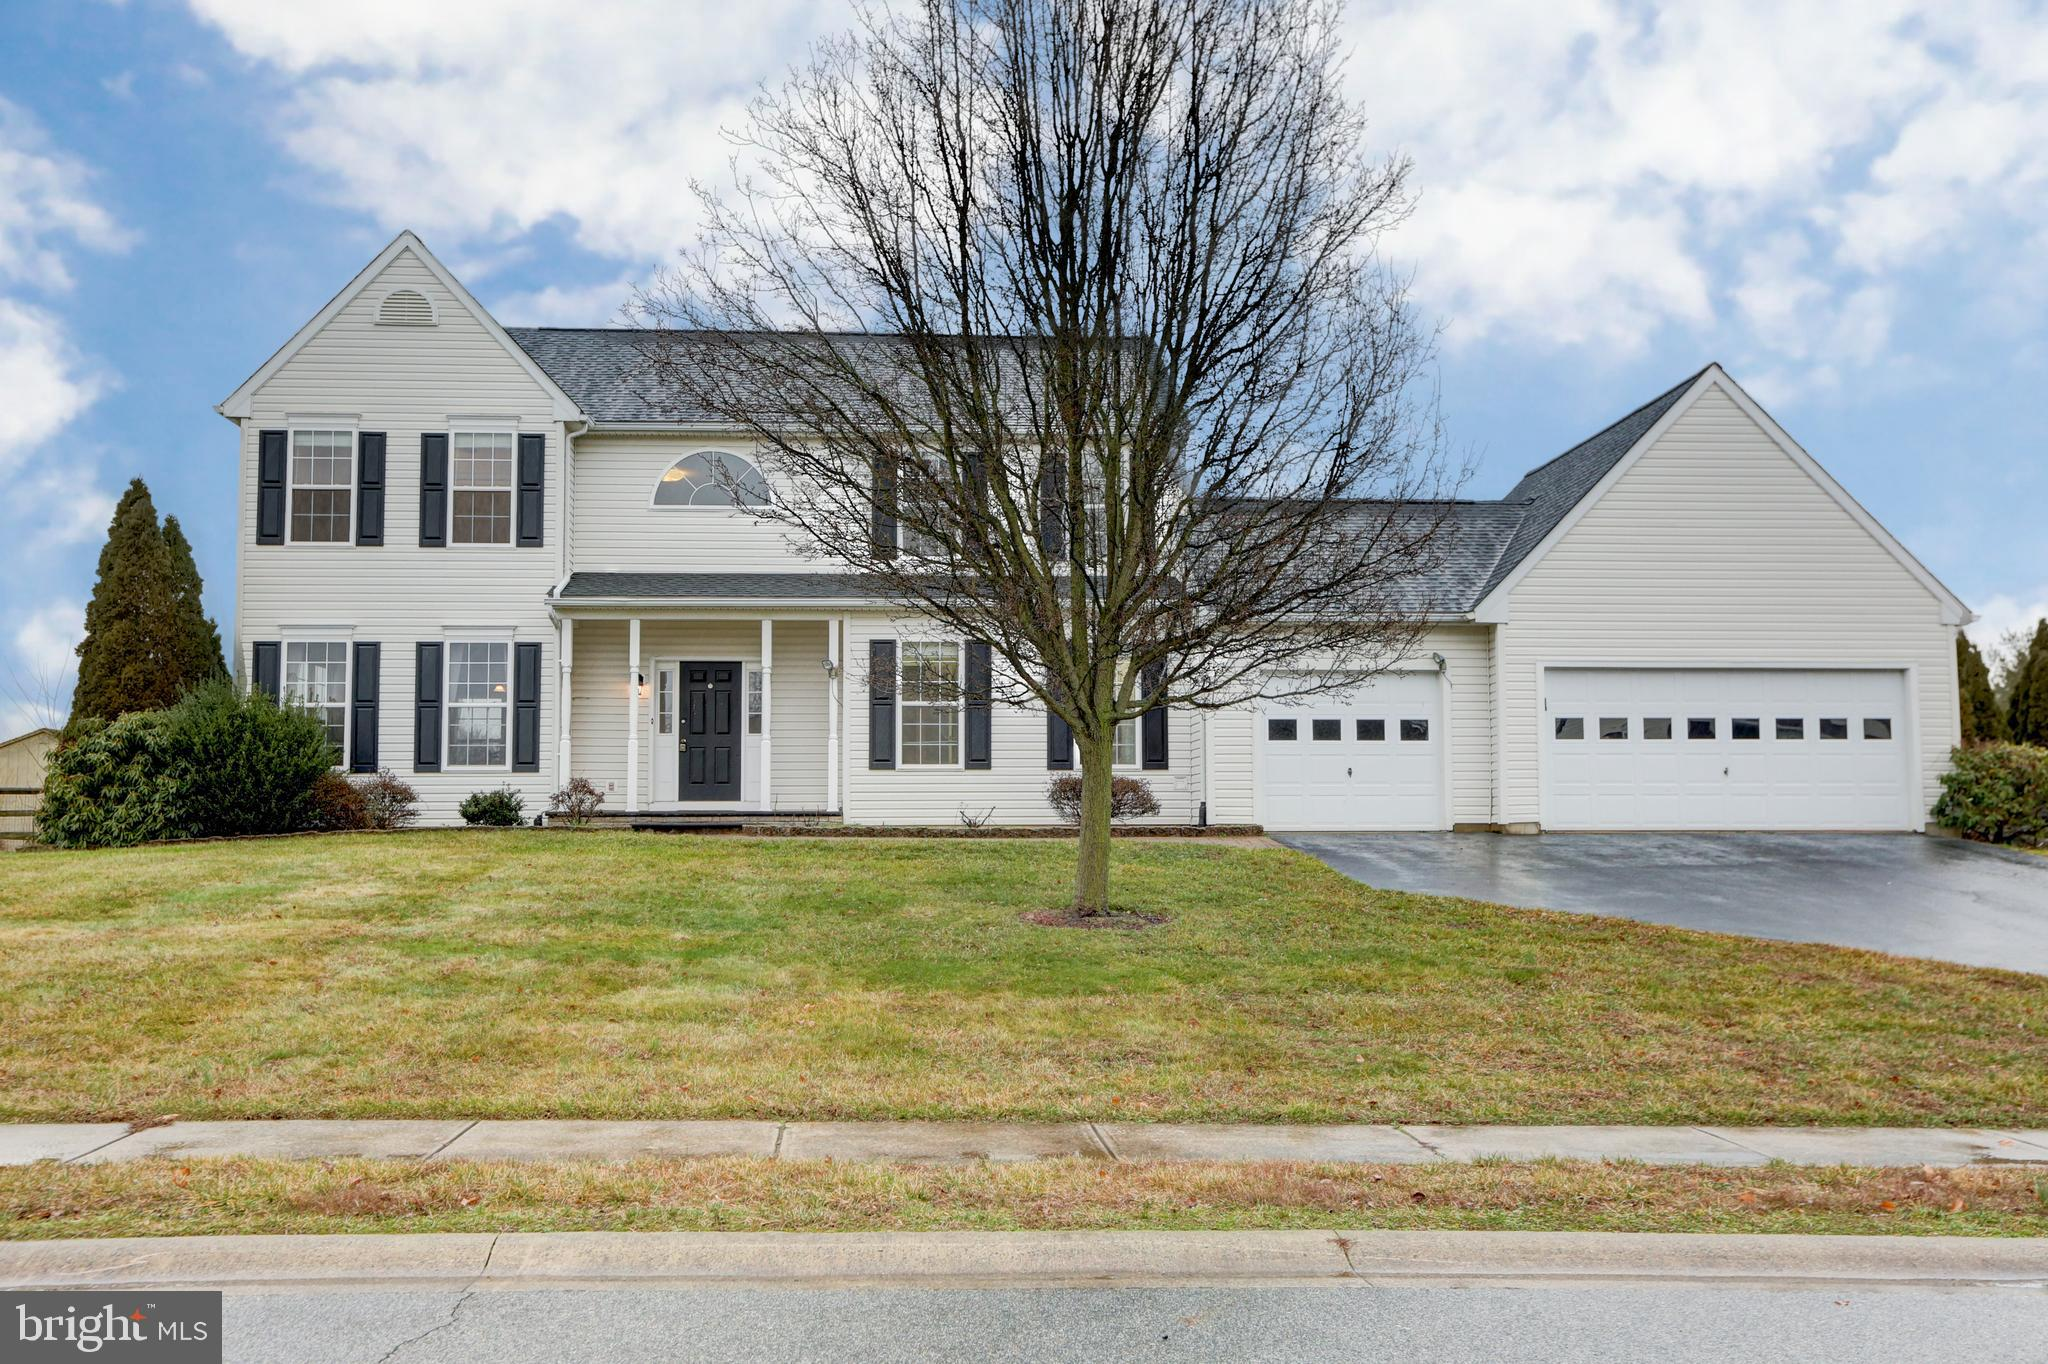 New listing on 3/4 acres in the Appo District! Located in the popular Brick Mill Farm development in Middletown, this gorgeous four bedroom home right near town, but not in the town limits (No town taxes)! The property is situated on a spacious lot with a rear, screened deck perfect for relaxing and entertaining! Enter the main level and take in the beautifully designed layout including an open, 2-story foyer with a bright living room to the left that flows nicely into the dining room. Towards the back of the main level is the updated eat-in kitchen complete with gorgeous white cabinets, updated marble counters, a farmhouse sink, double oven, and a beautiful tile backsplash that brings the whole space together.  An airy breakfast room with a complimenting skylight window sits next to the kitchen. The family room features a beautiful gas fireplace and provides access to the rear screened deck and fenced in yard. Also located on this floor is the spacious laundry room, a convenient powder room, and access to the 3-car garage & oversized driveway. Make your way upstairs and you'll find four bedrooms including a master suite complete with an en suite double sink bathroom with a soaking tub, and a large walk-in closet! Another full, double sink bathroom is located in the upstairs hallway. That's not all! The home also has a fully finished basement with bonus storage space! Professionally staged and move-in ready! Sold on this house?! Schedule your tour today!